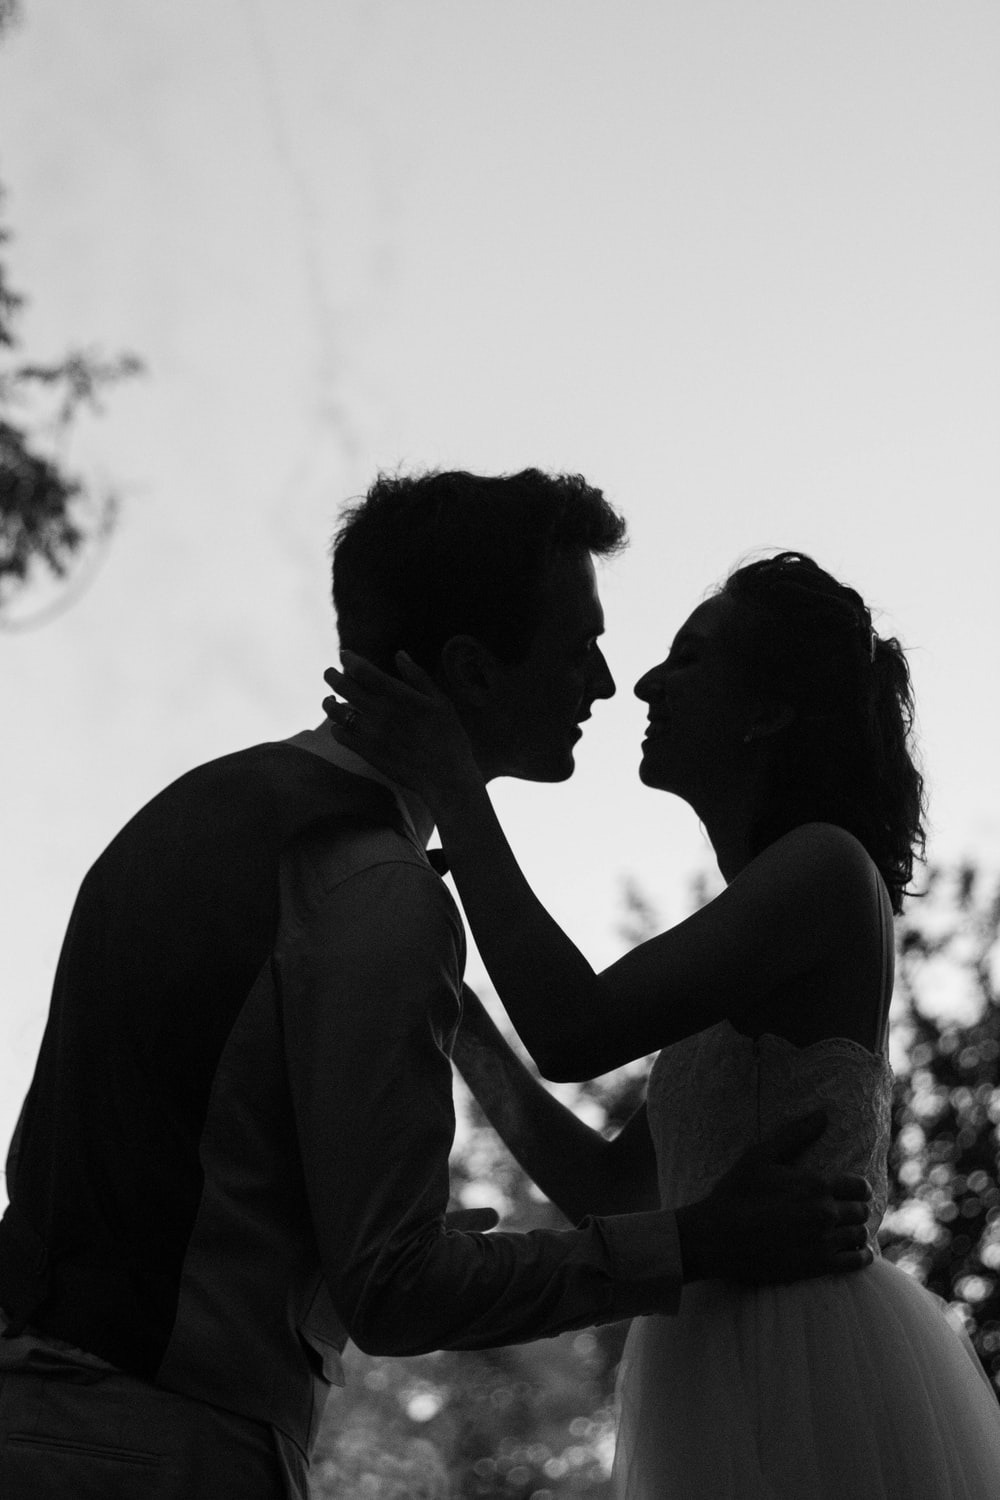 Silhouette grayscale photo of man and woman attempting to kiss